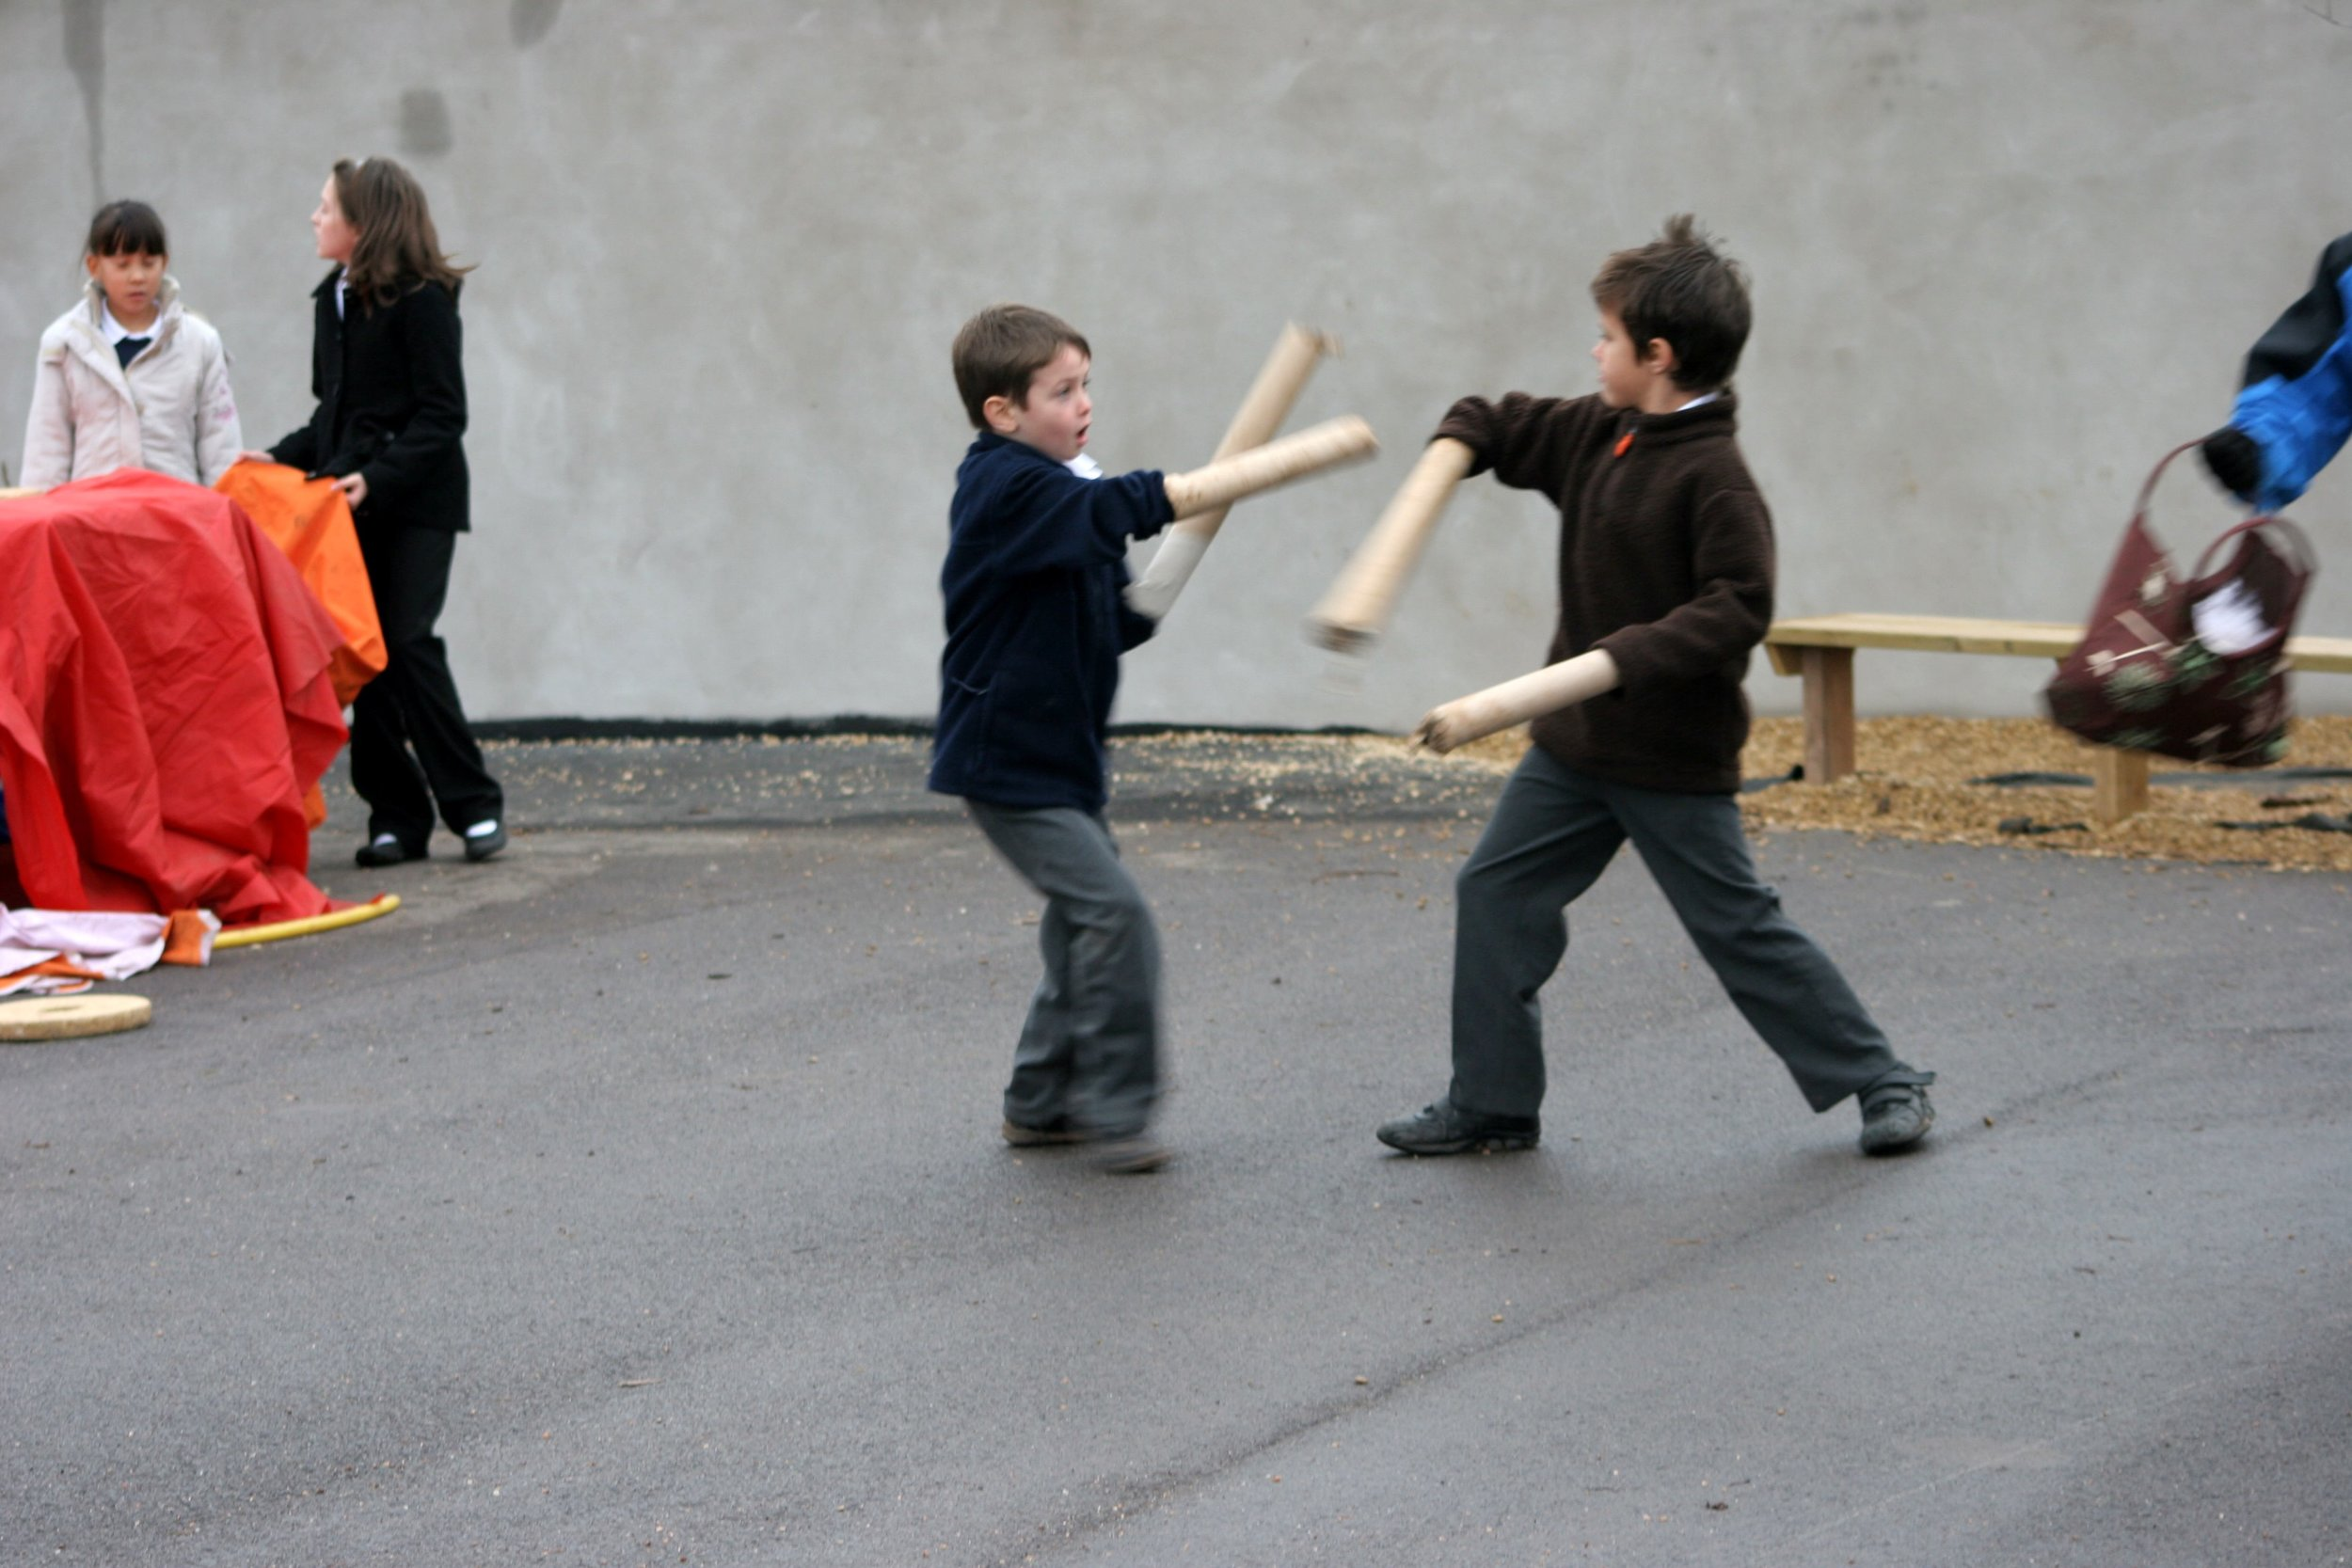 Useful tools to engage in playful combat, developing skills in gross and fine motor skills, practicing emotional regulation and 'Playing out' situations in a safe and emotionally secure environment. Children also learning about boundaries through taking risks in their play.